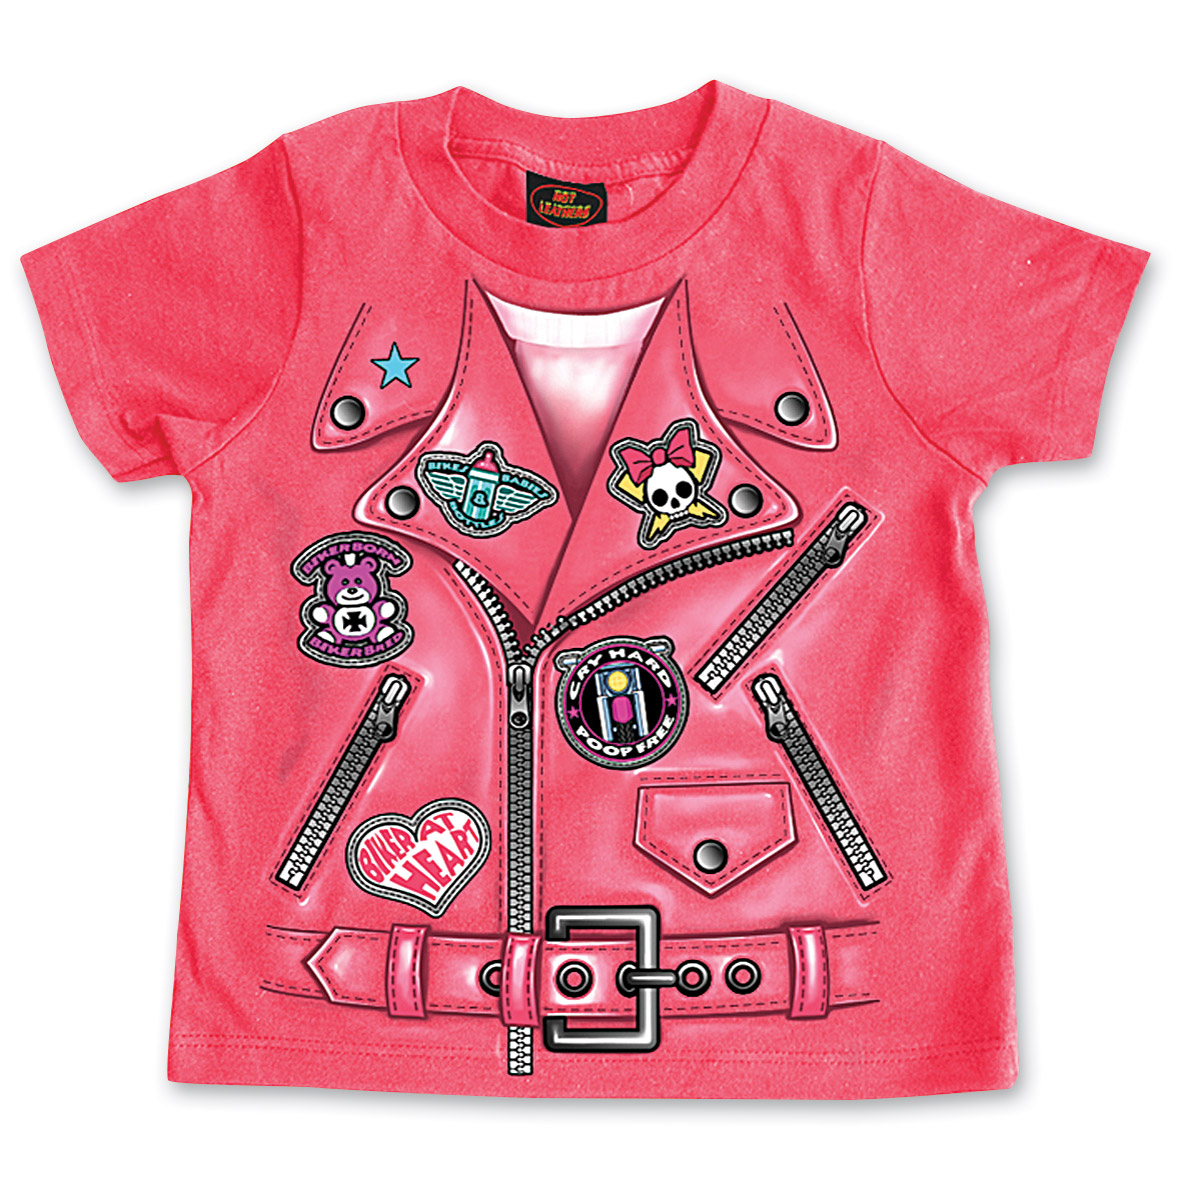 Hot Leathers Girl's Leather Jacket Hot Pink T-Shirt